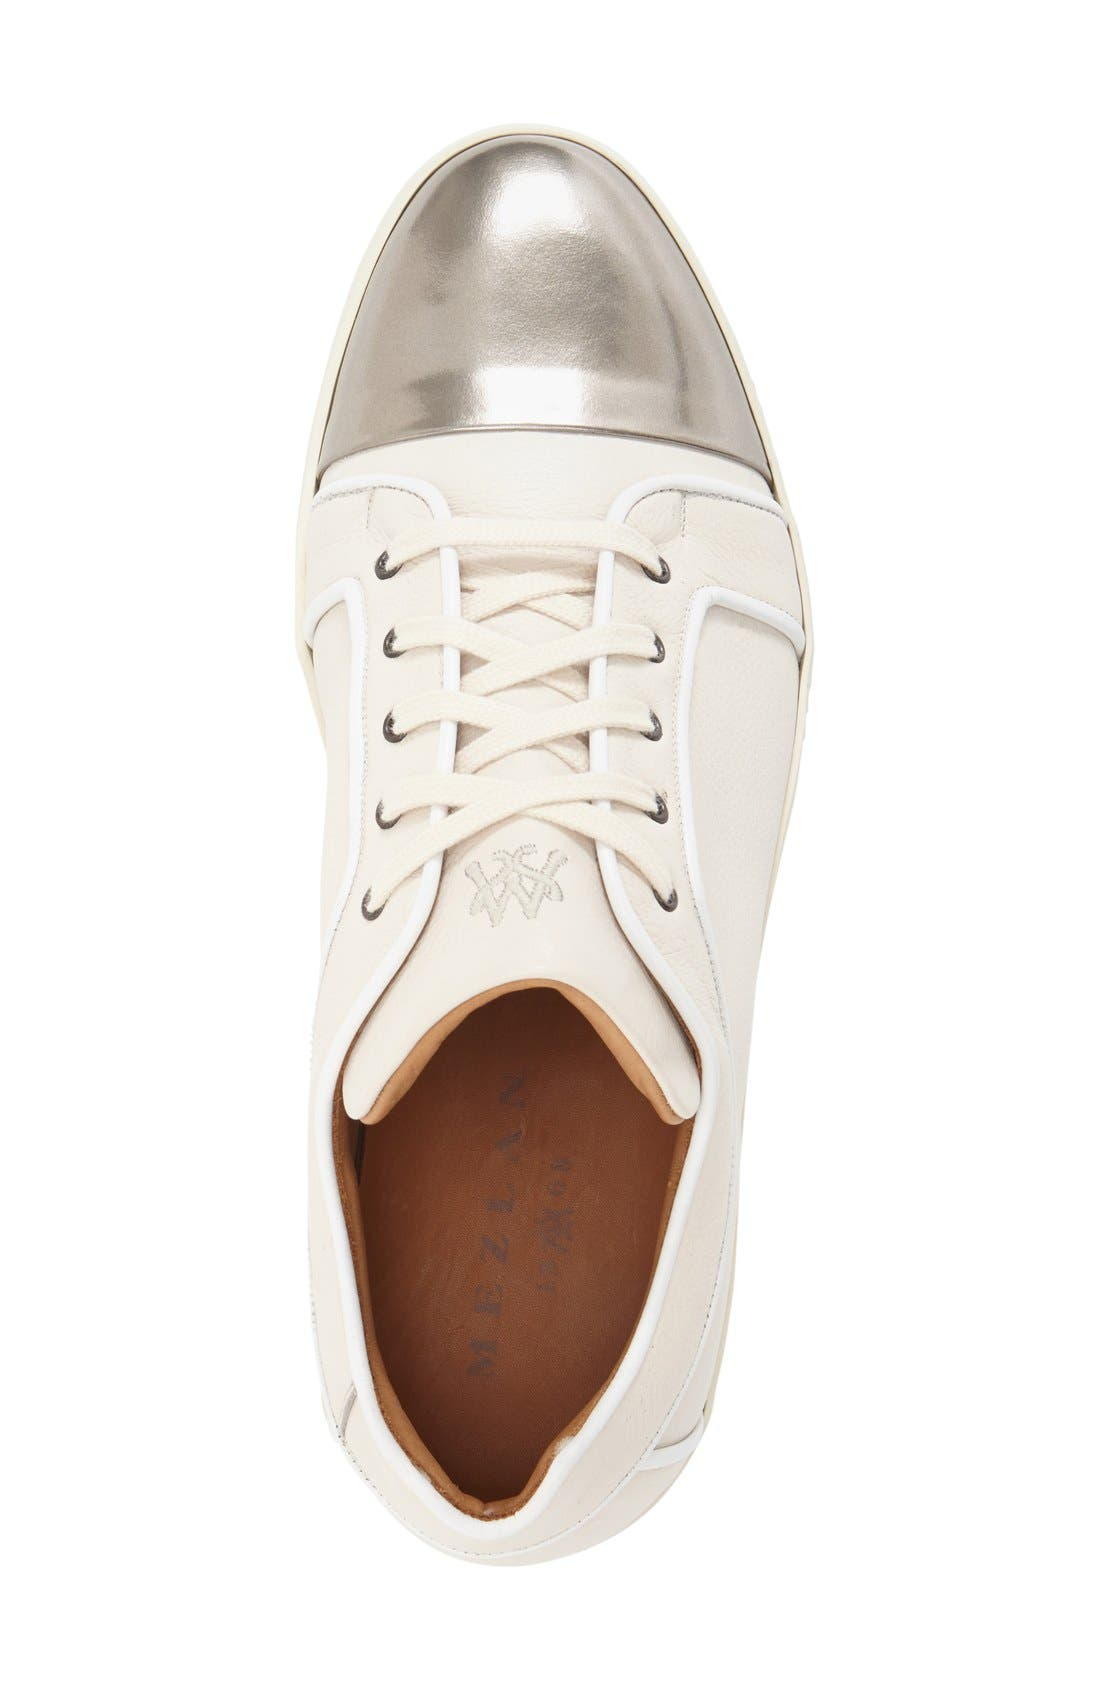 'Valeri' Sneaker,                             Alternate thumbnail 3, color,                             Silver/ White Calfskin